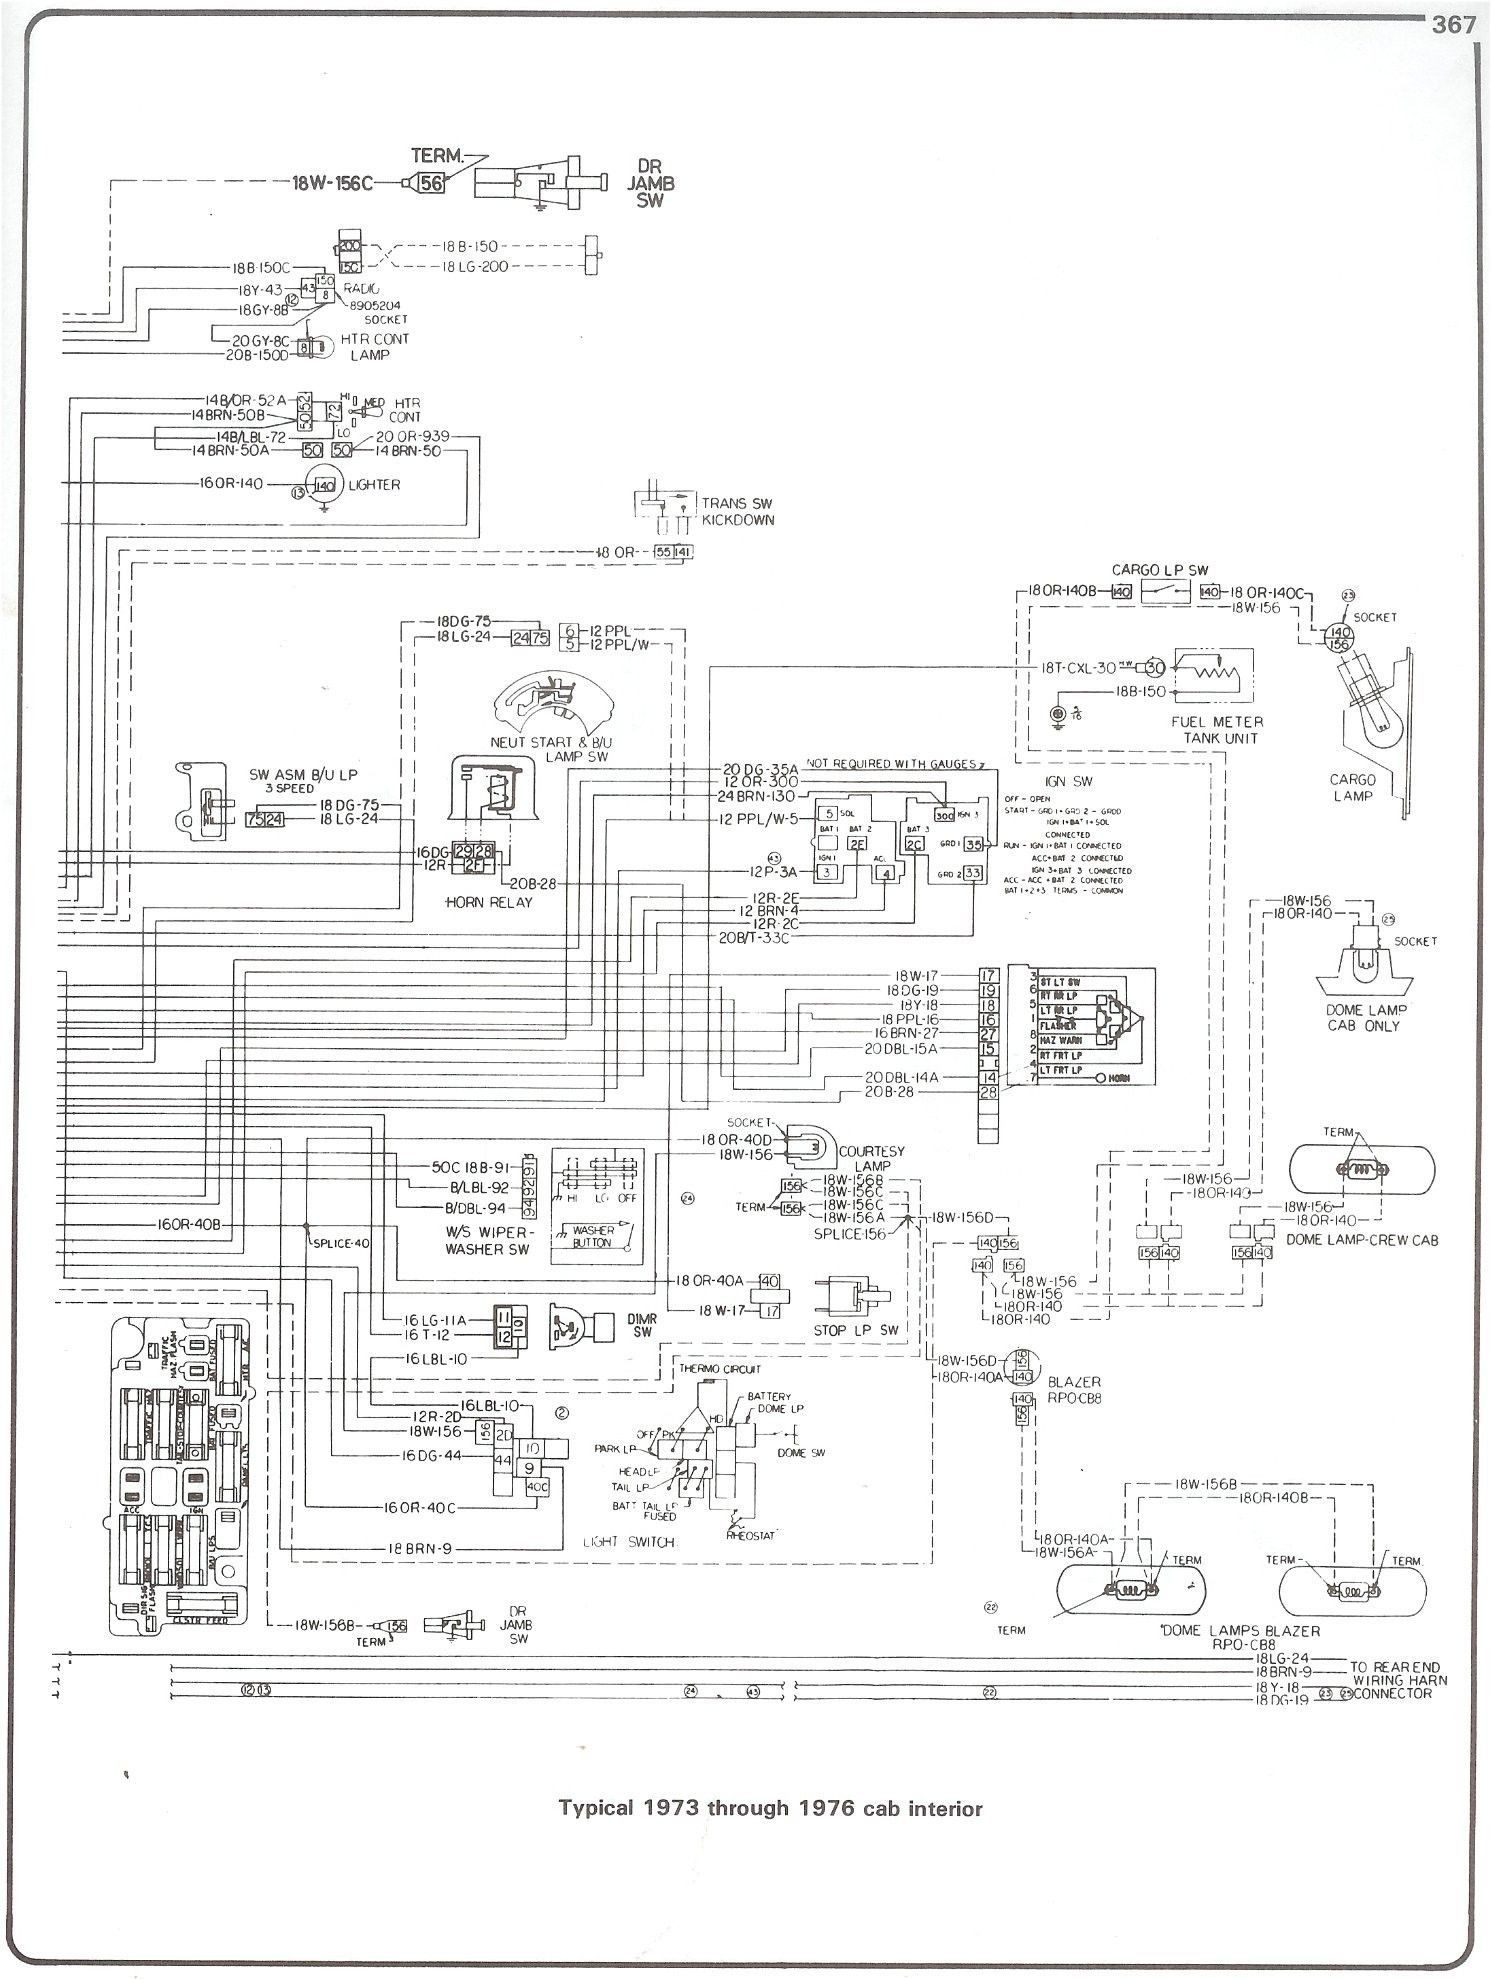 76 Chevy Truck Wiring Diagram | Site Wiring Diagrams offender | Chevrolet Engine Diagram 1984 |  | wiring diagram library